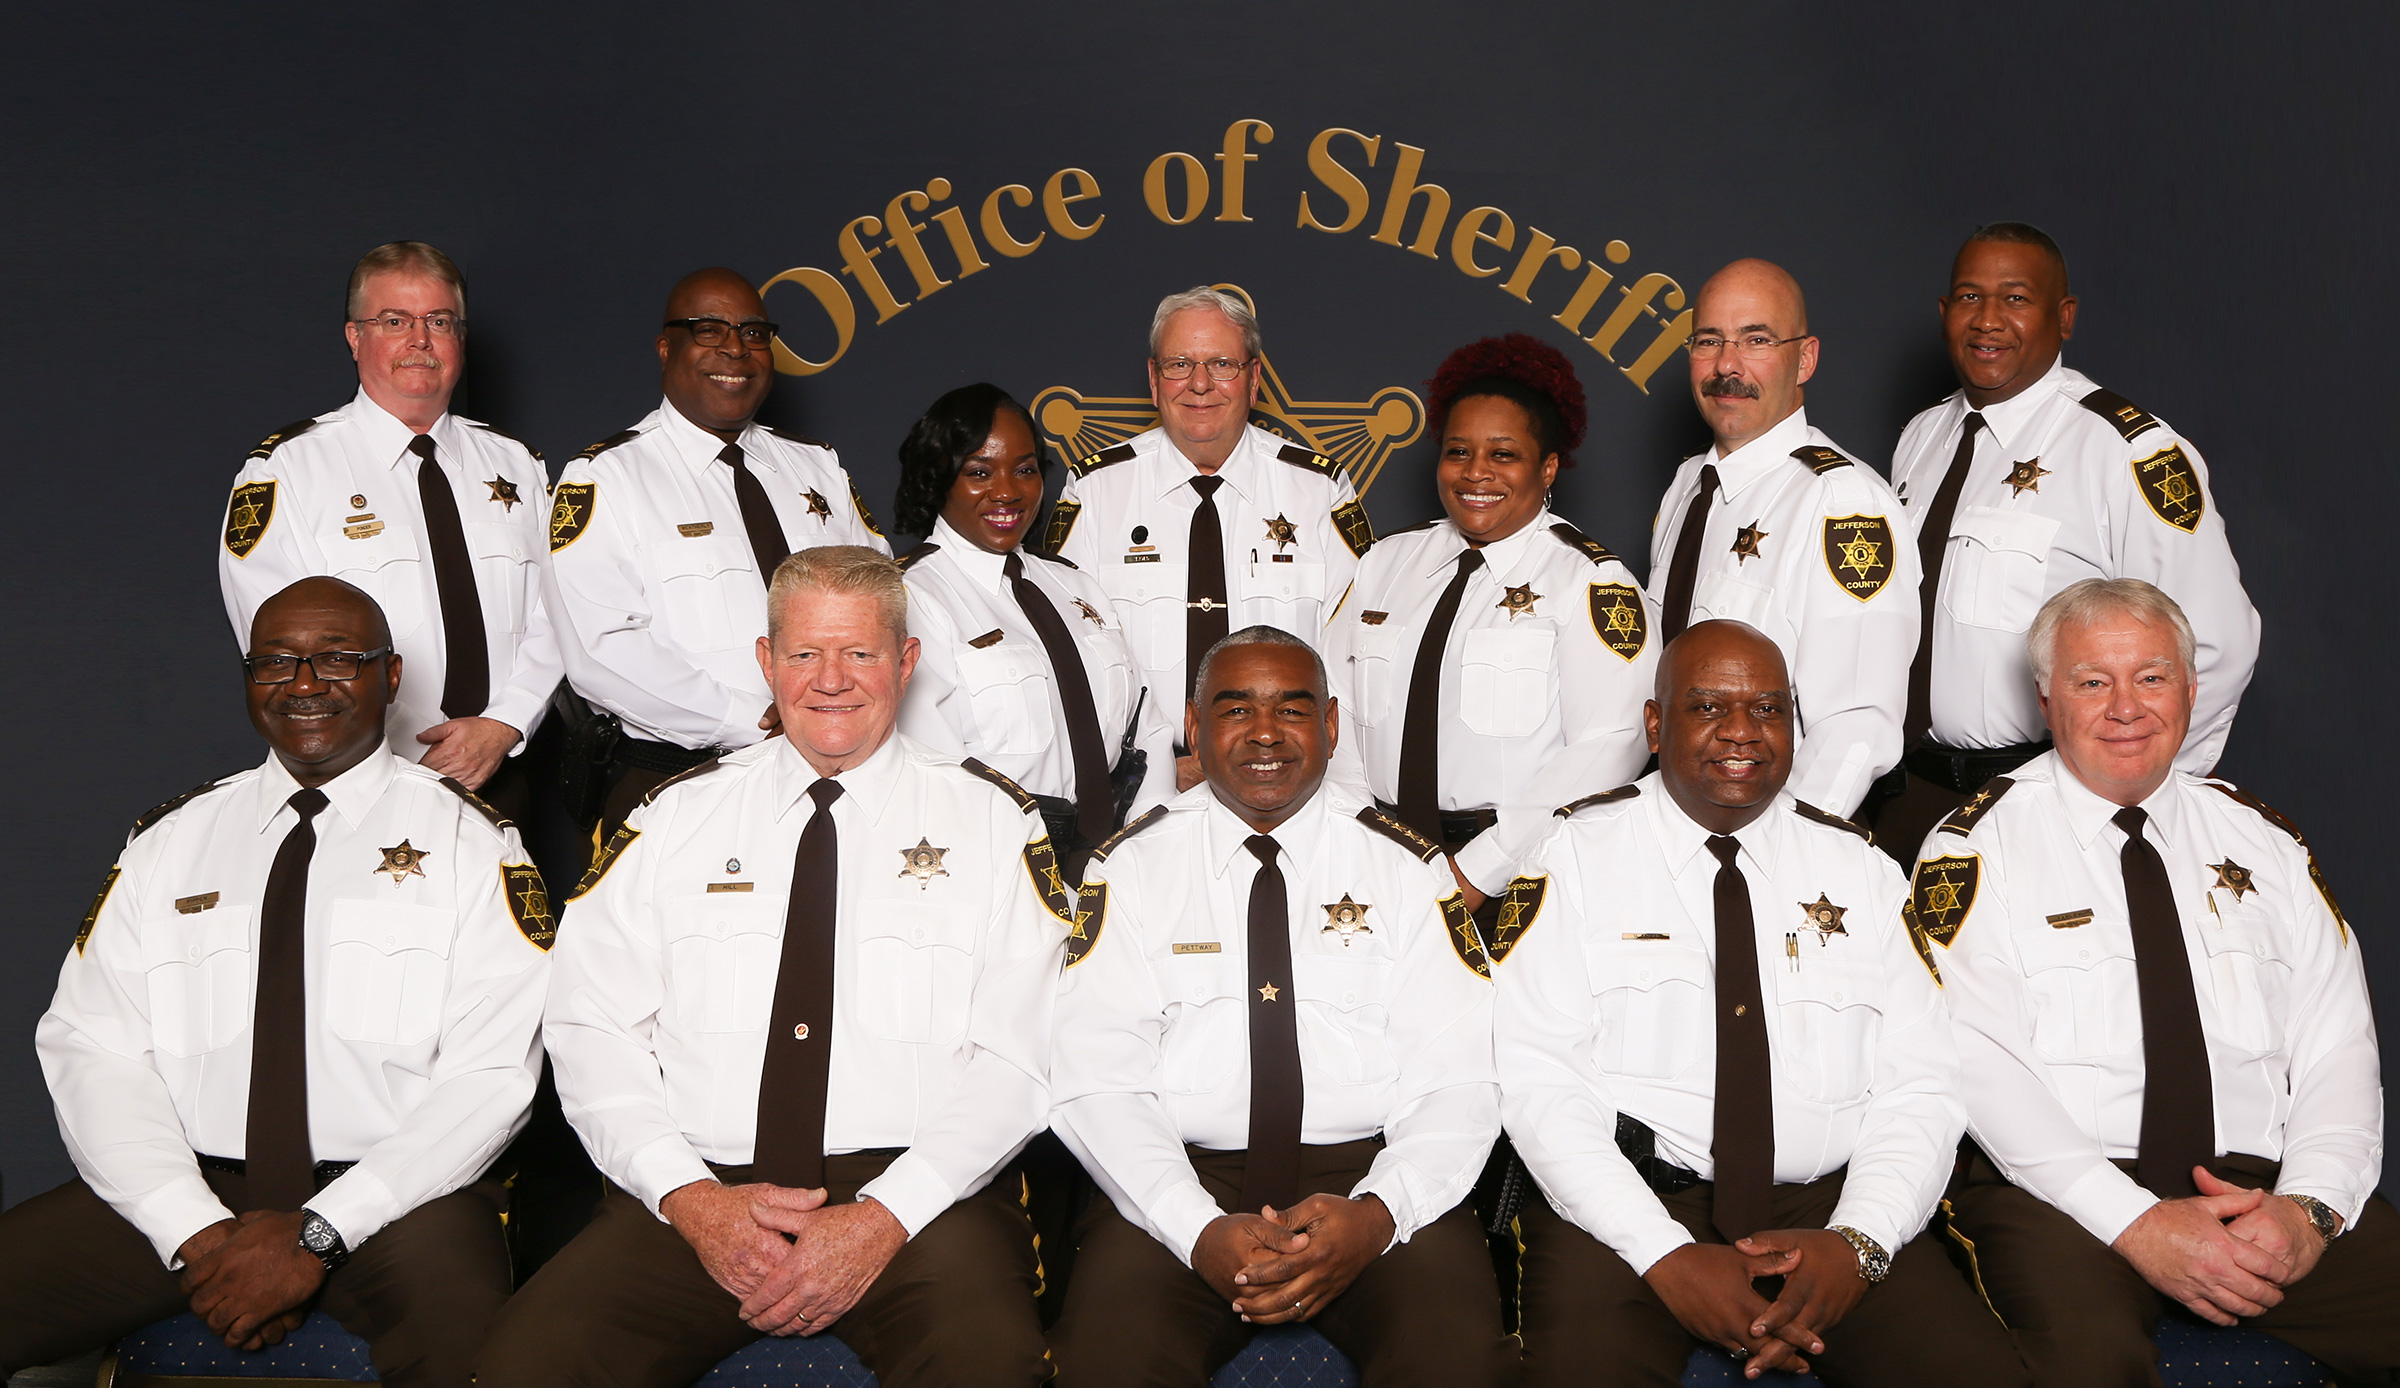 Command-Staff-Jefferson-County-Sheriff-Department